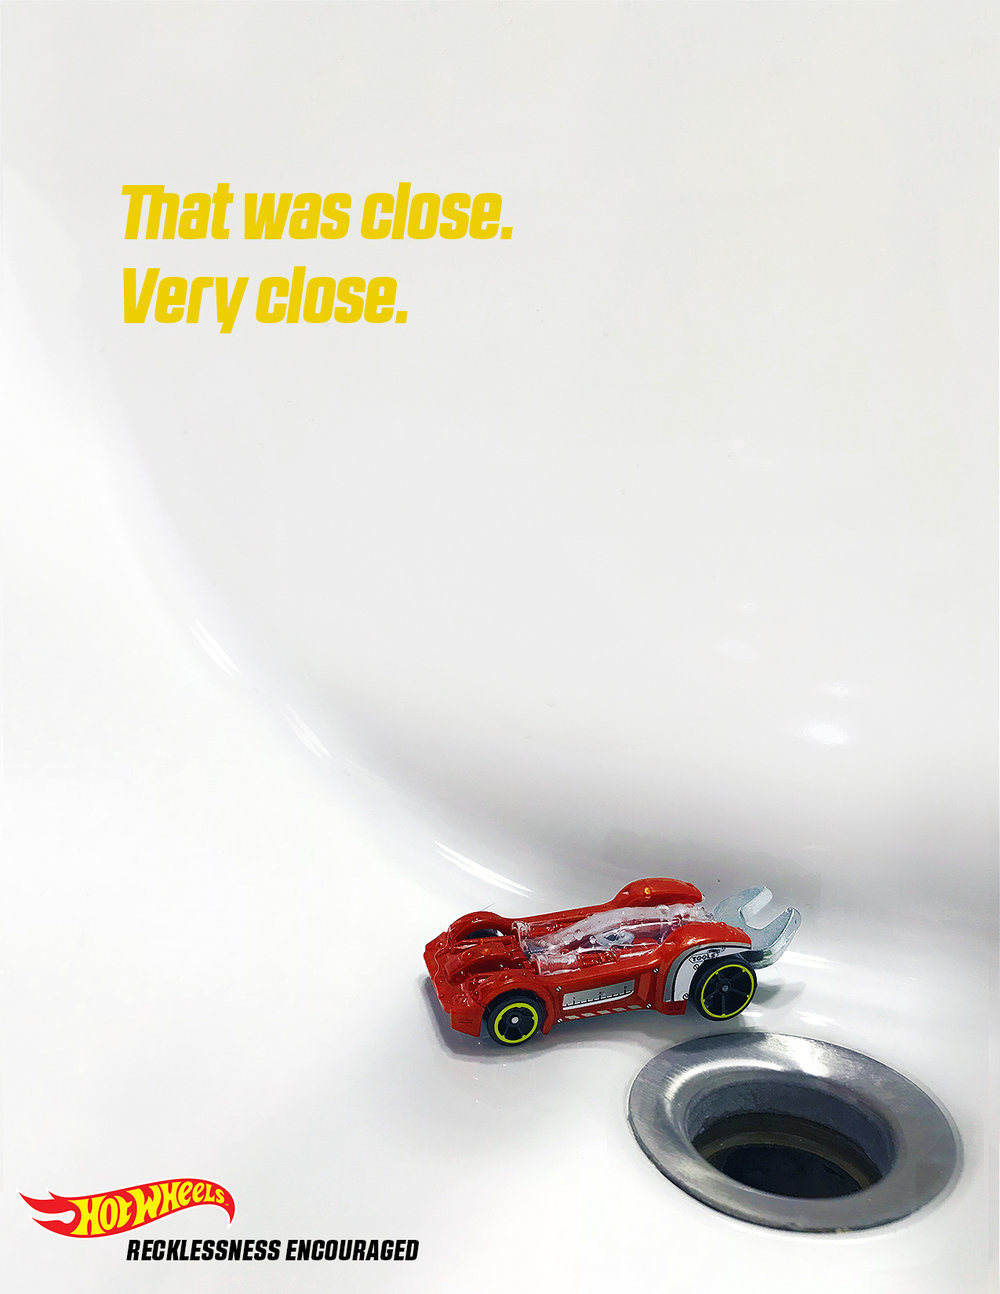 HotWheels_Close_VeryClose.jpg